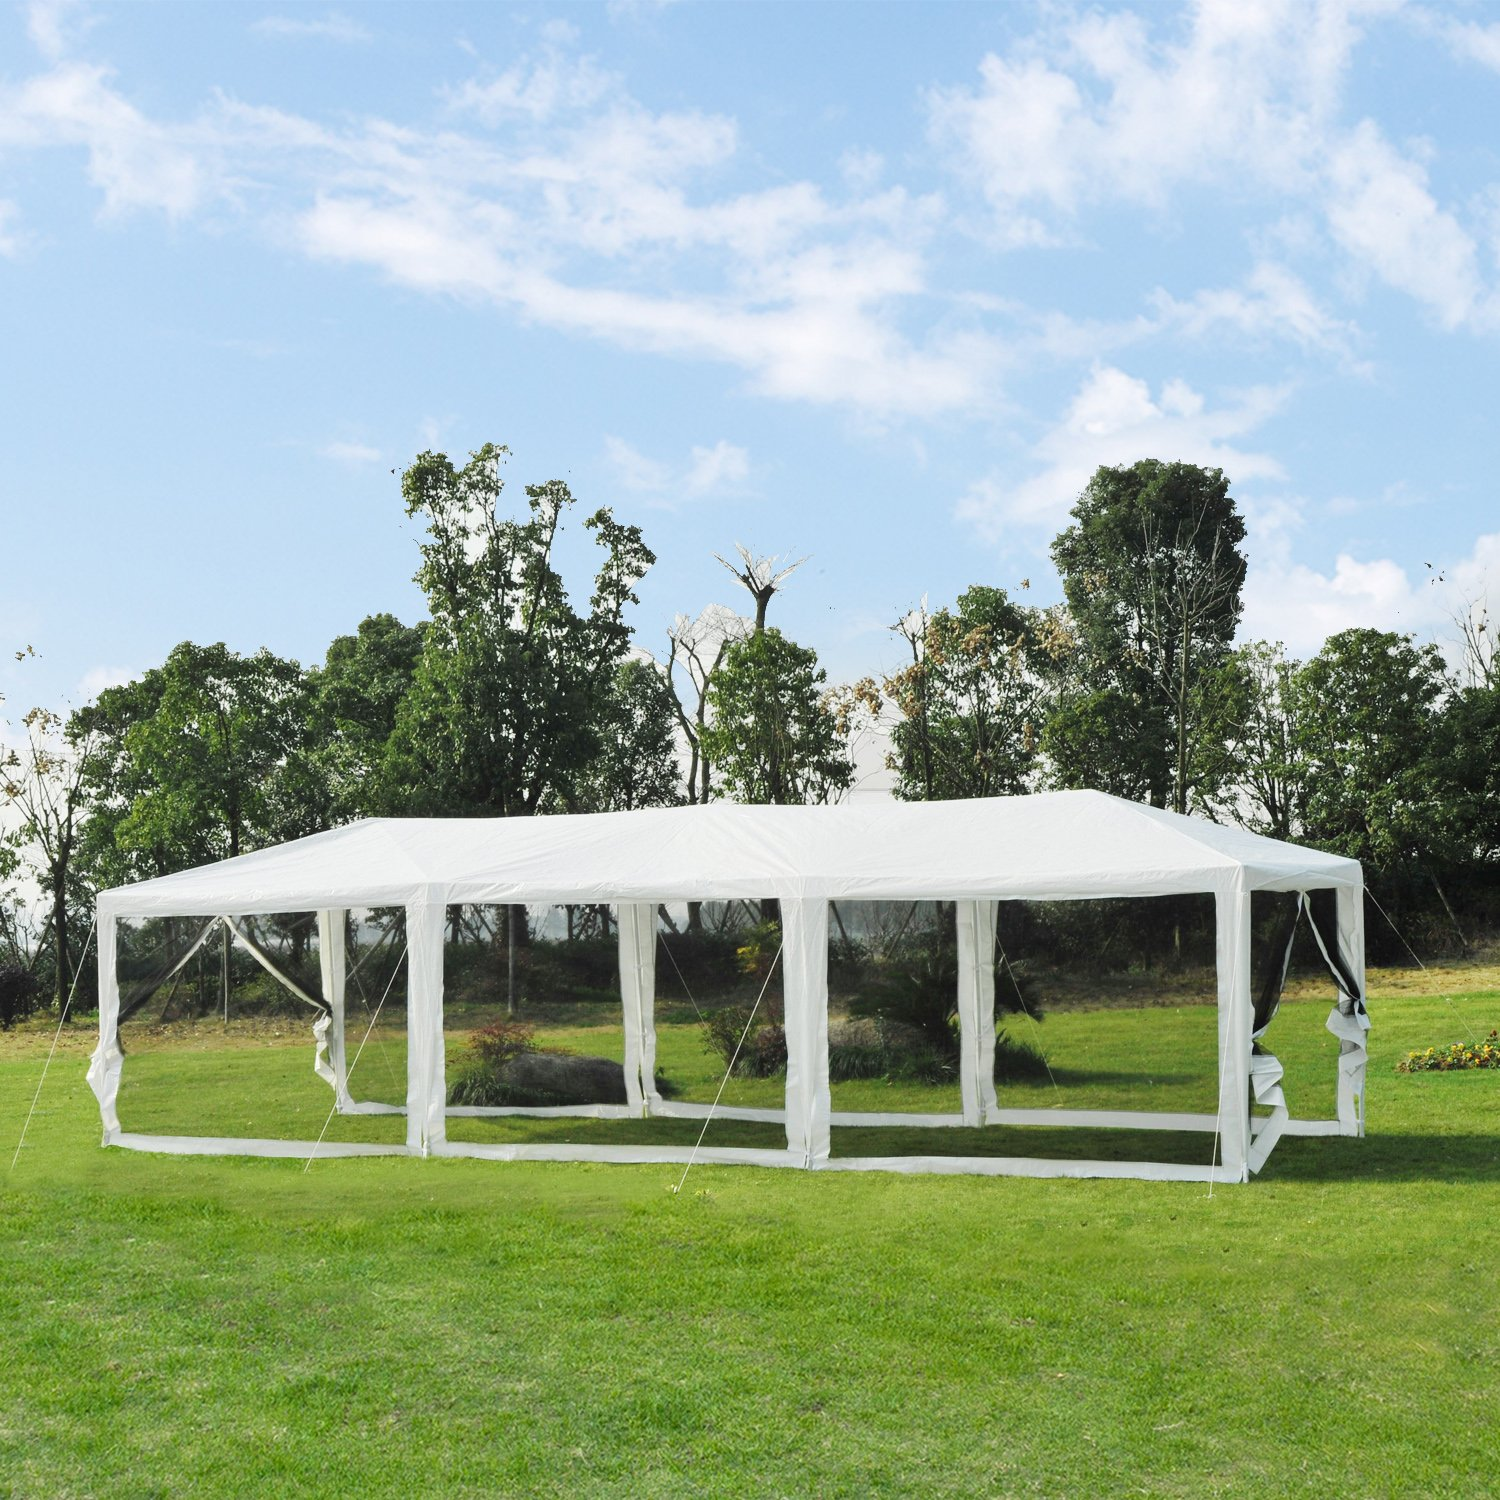 Outsunny Canopy Gazebo Party Tent w/Mesh Side Walls (10ft x 30ft) by Outsunny